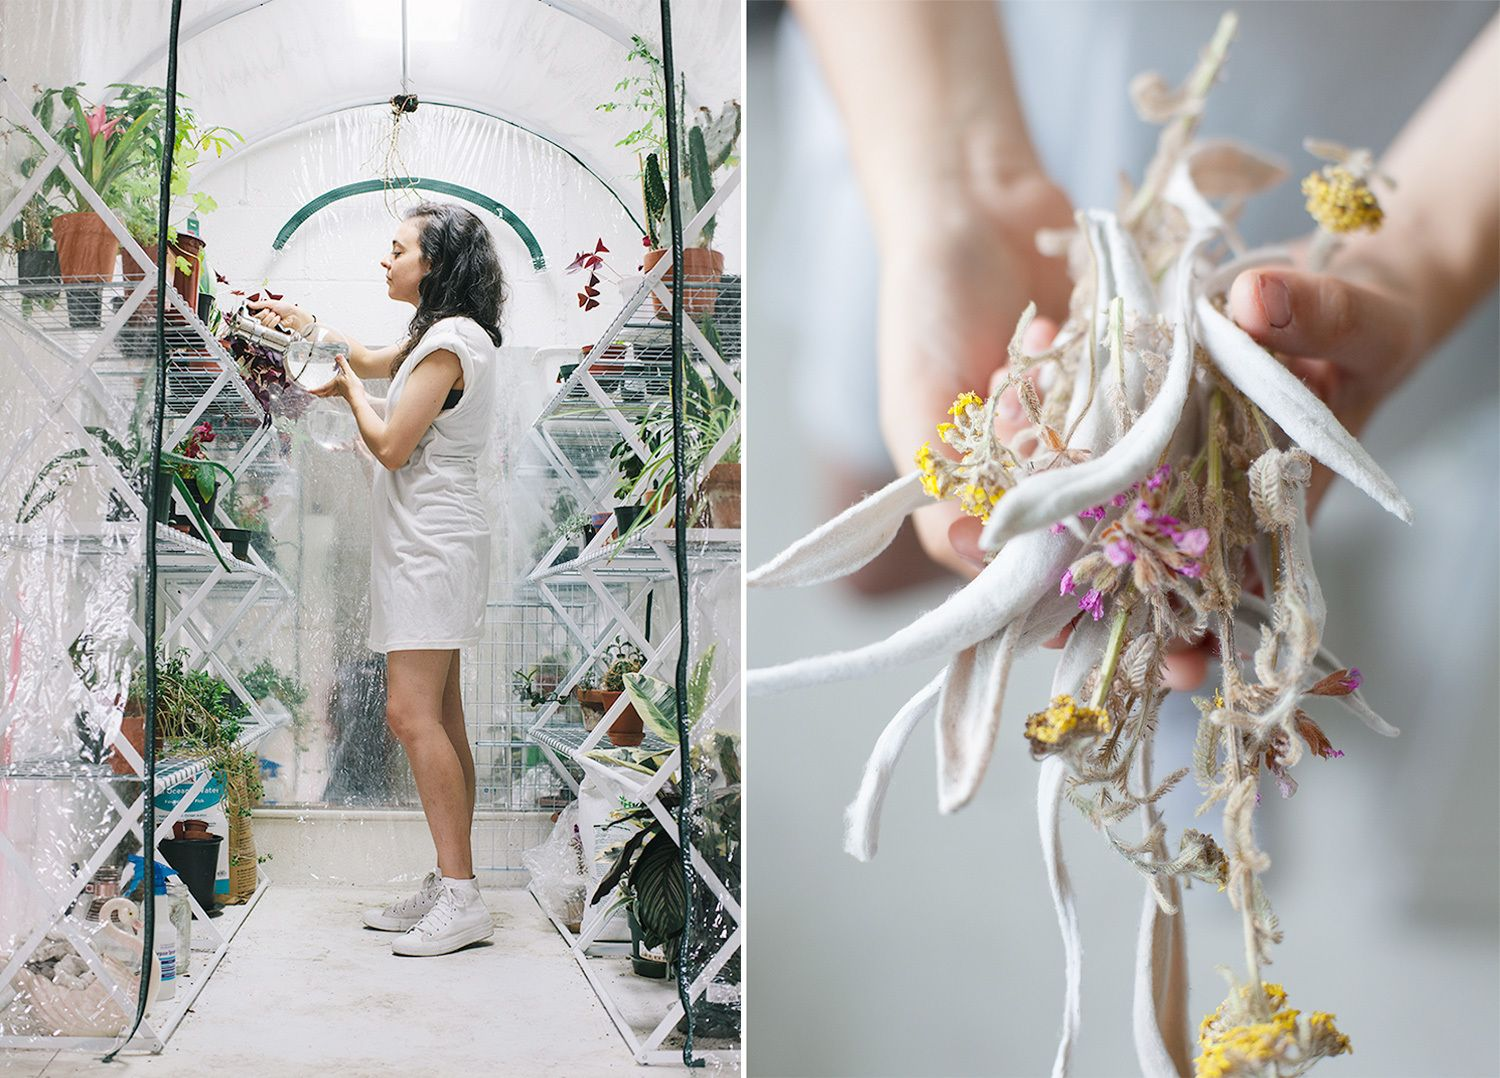 Gorgeous greenhouse images